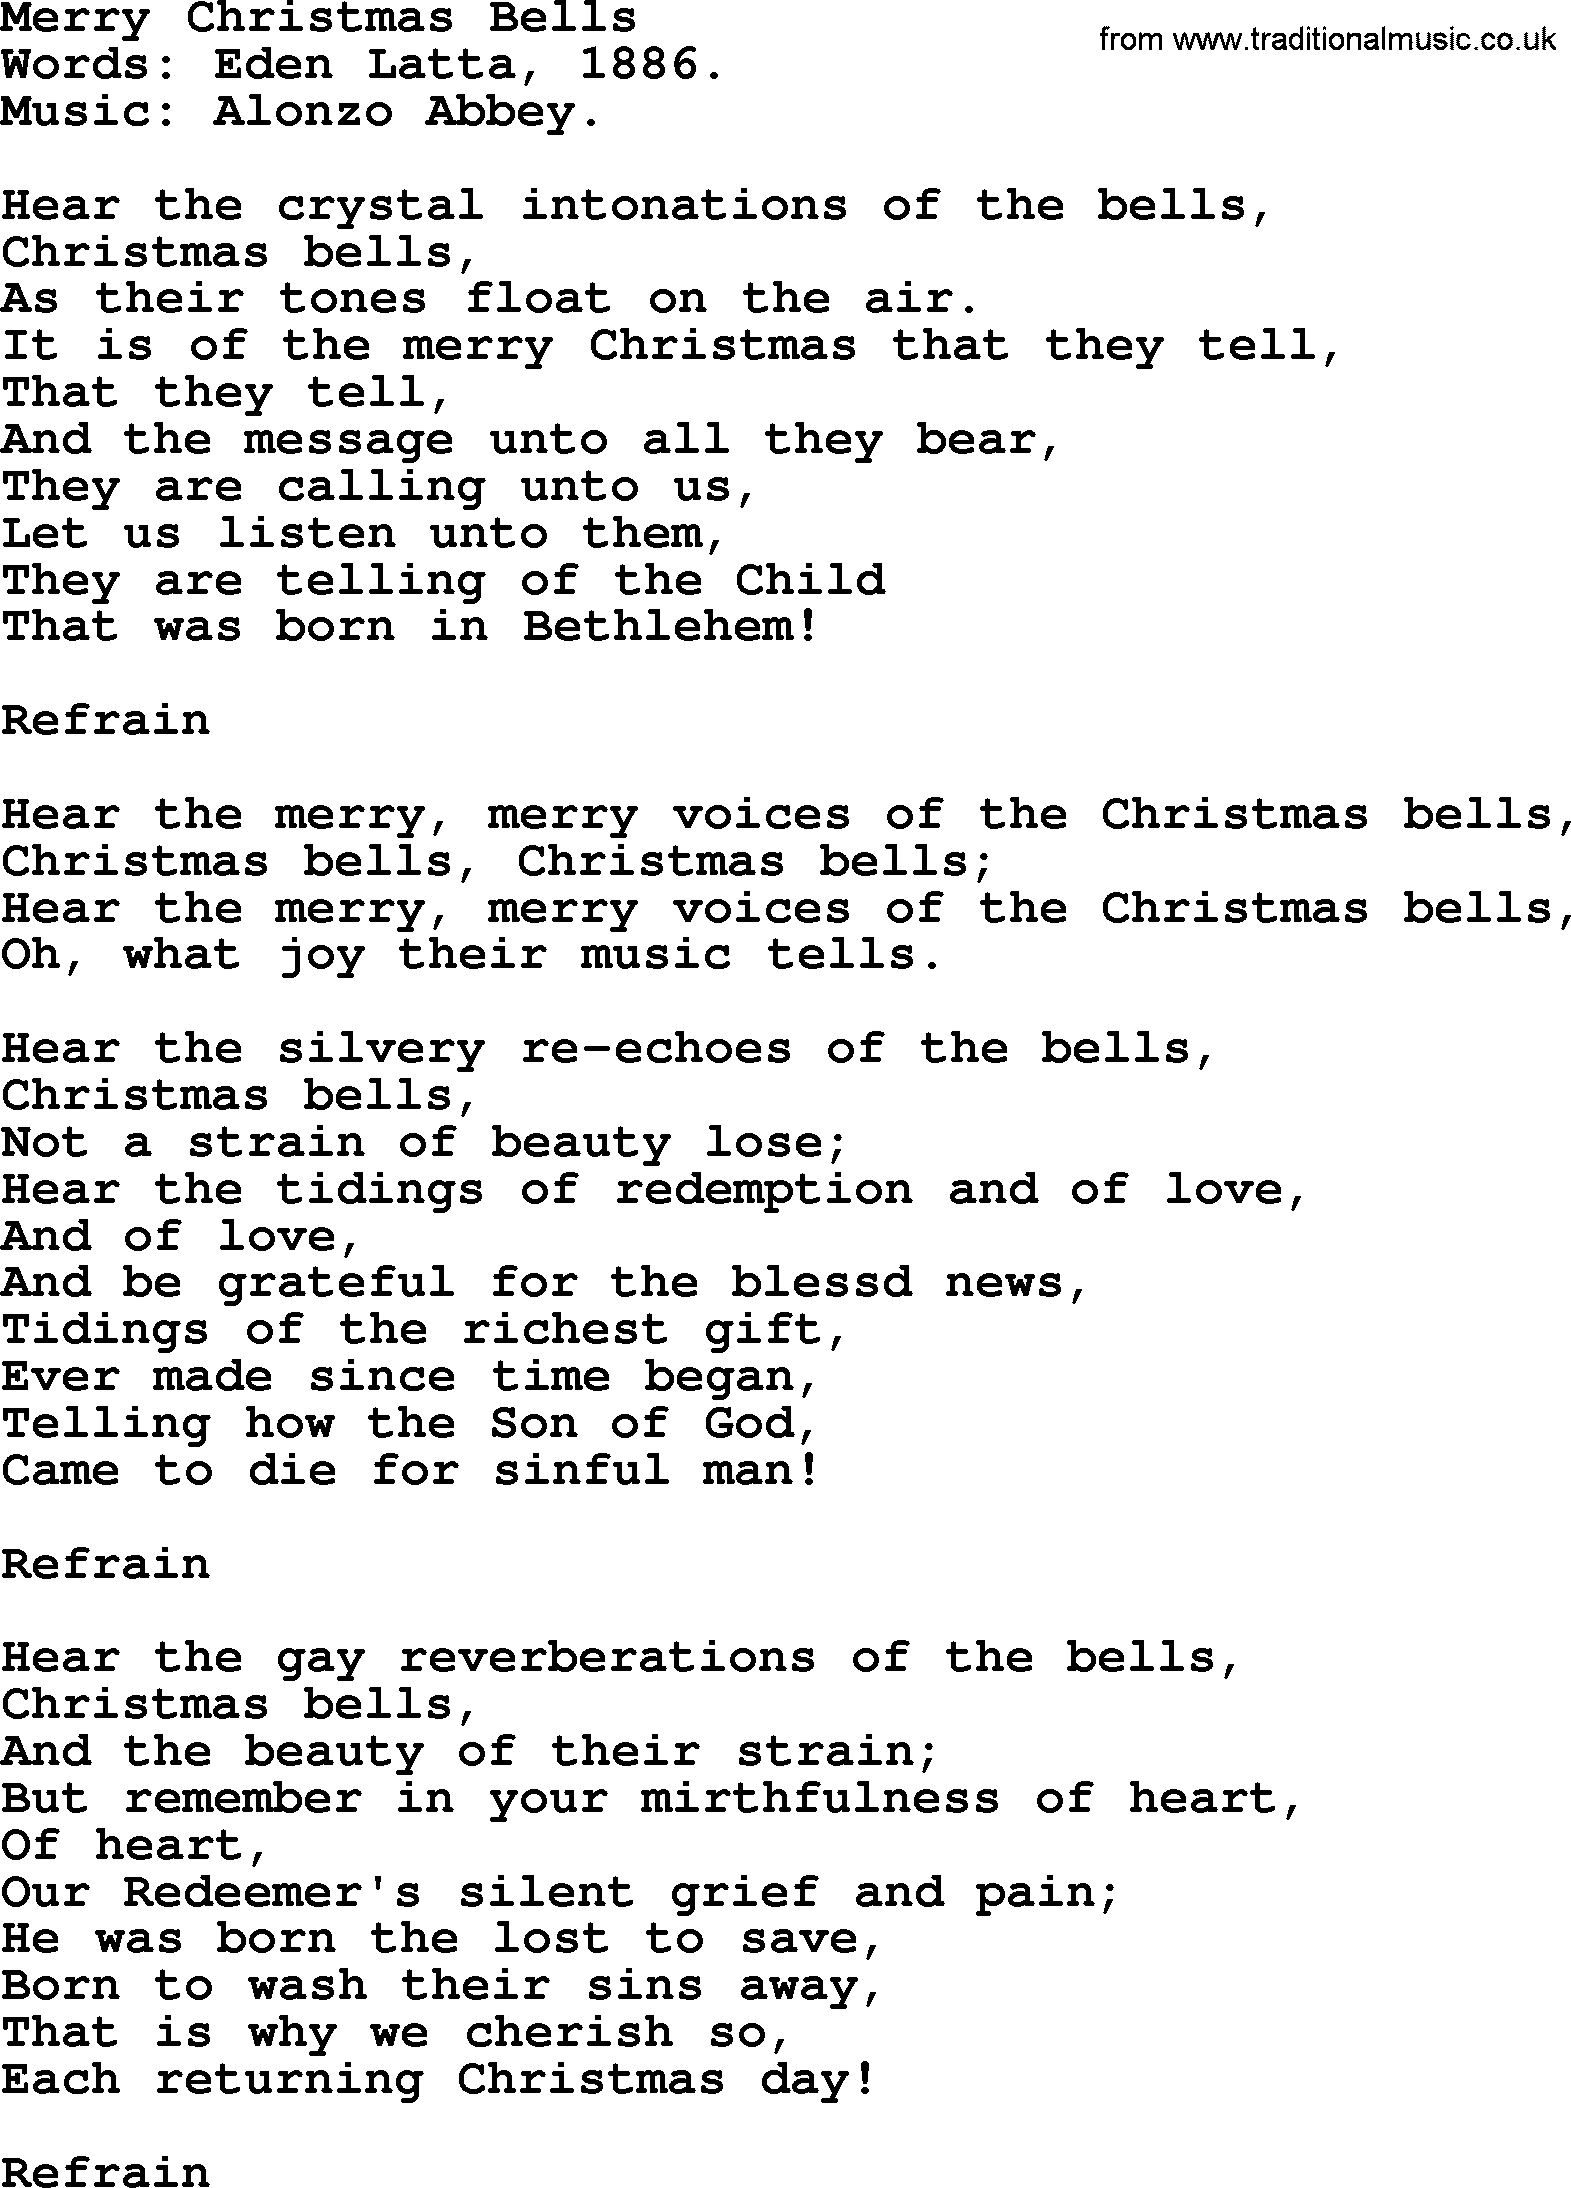 Christmas Hymns, Carols and Songs, title: Merry Christmas Bells ...